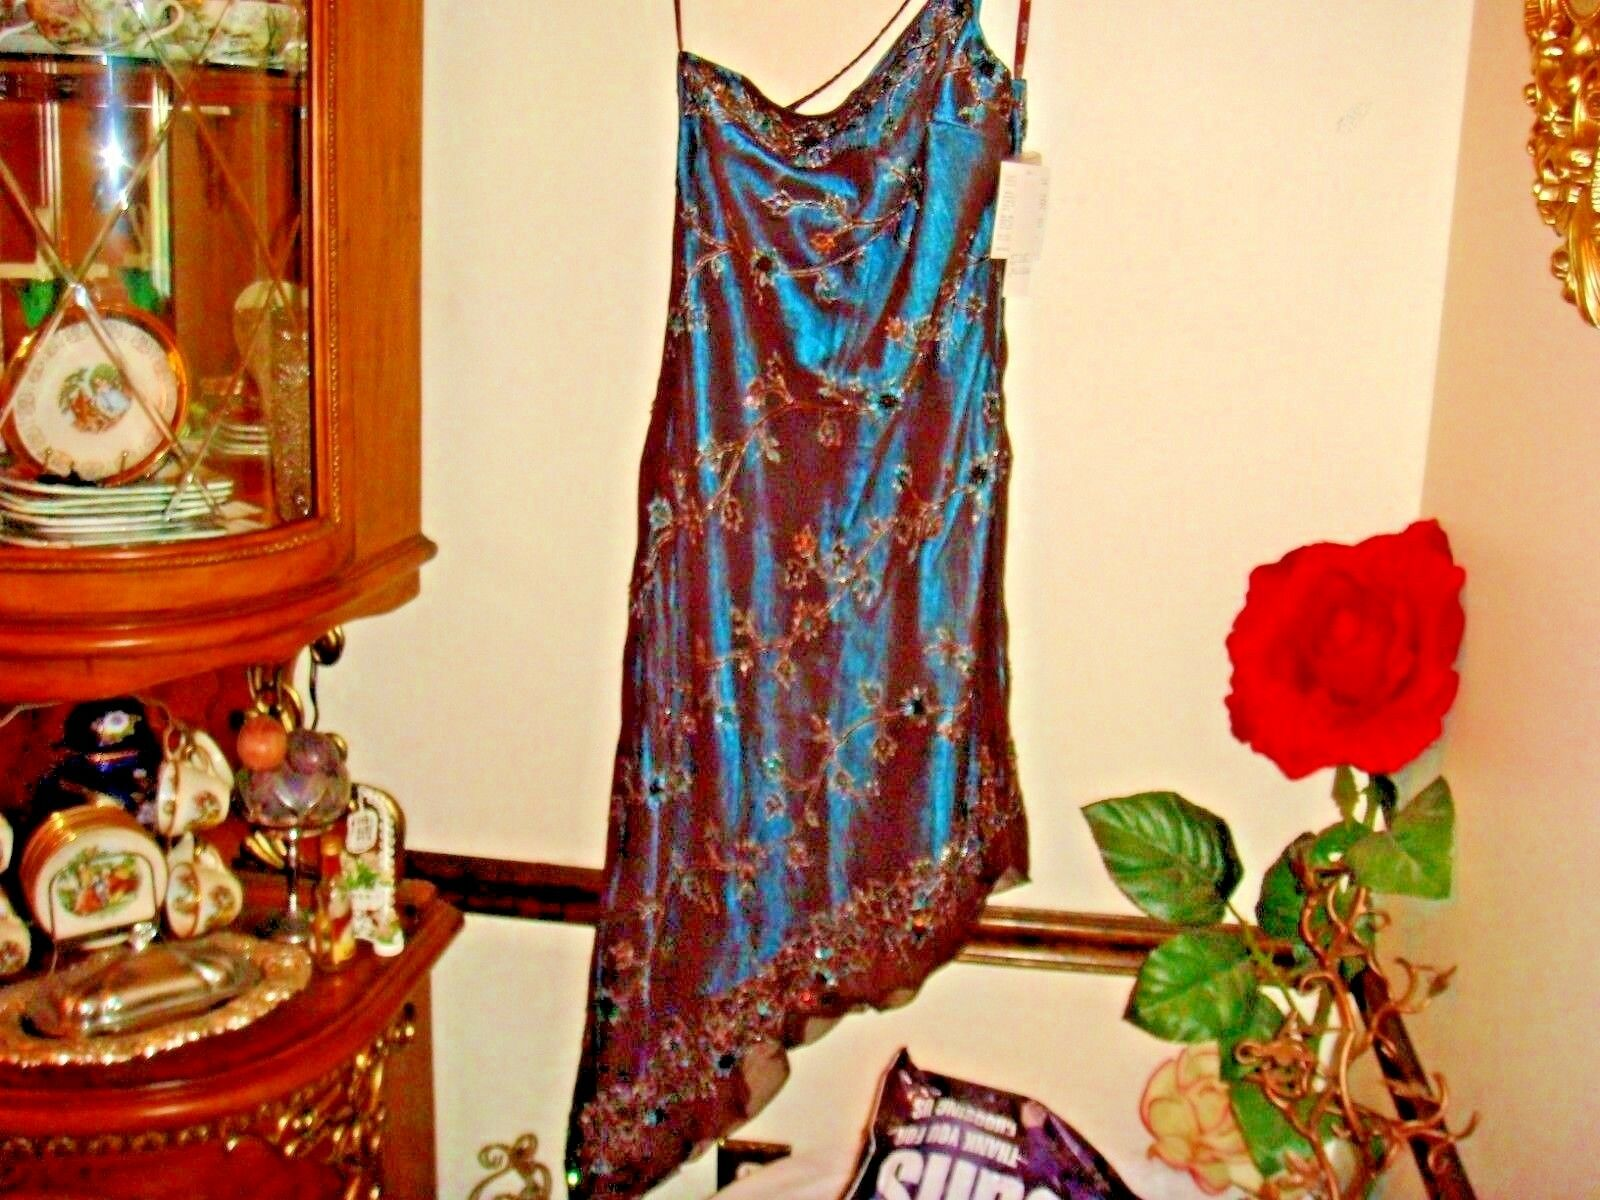 NWT SCALA Beautiful Beaded Sequin Gown Dress Formal Prom Größe Xlarge  braun Teal